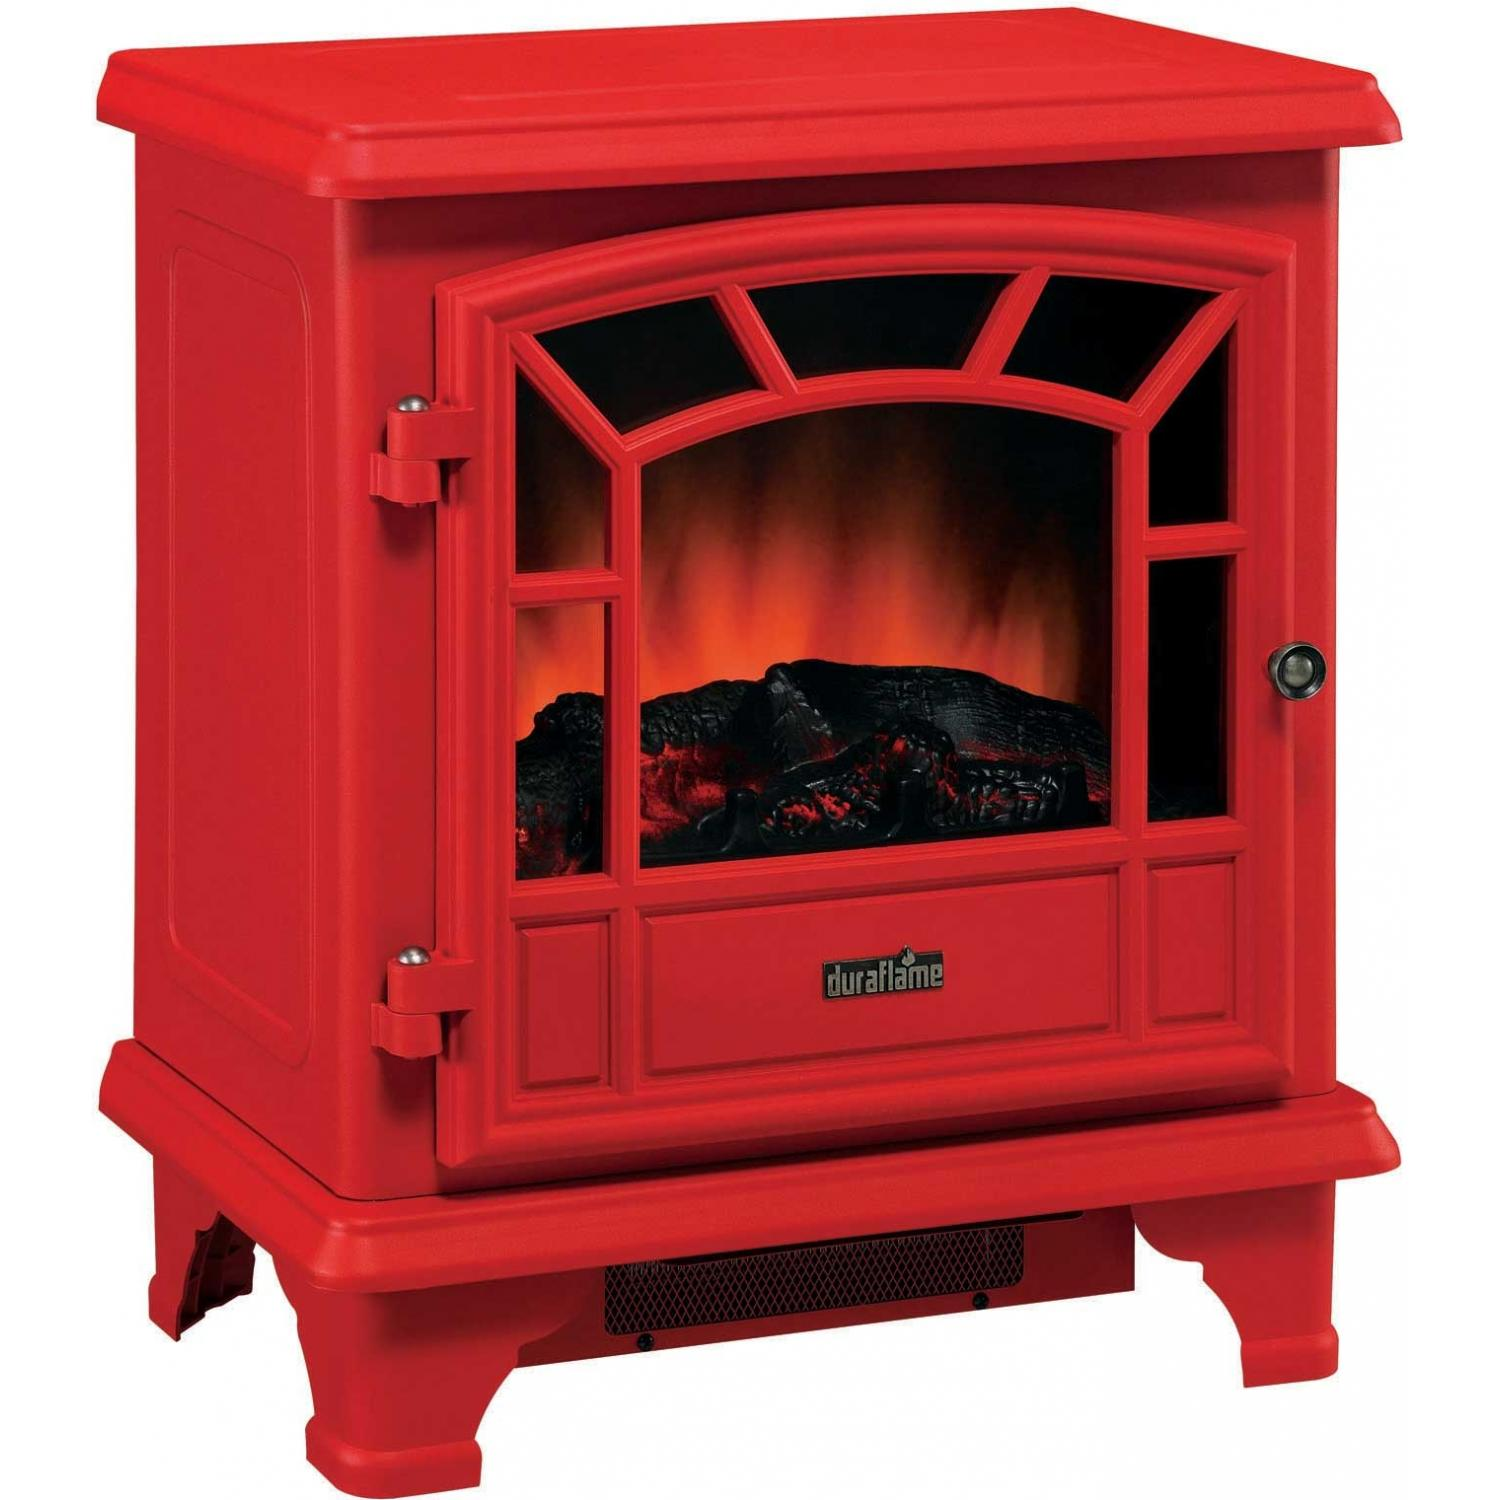 Duraflame DFS-550-0 Electric Stove With Heater - Red